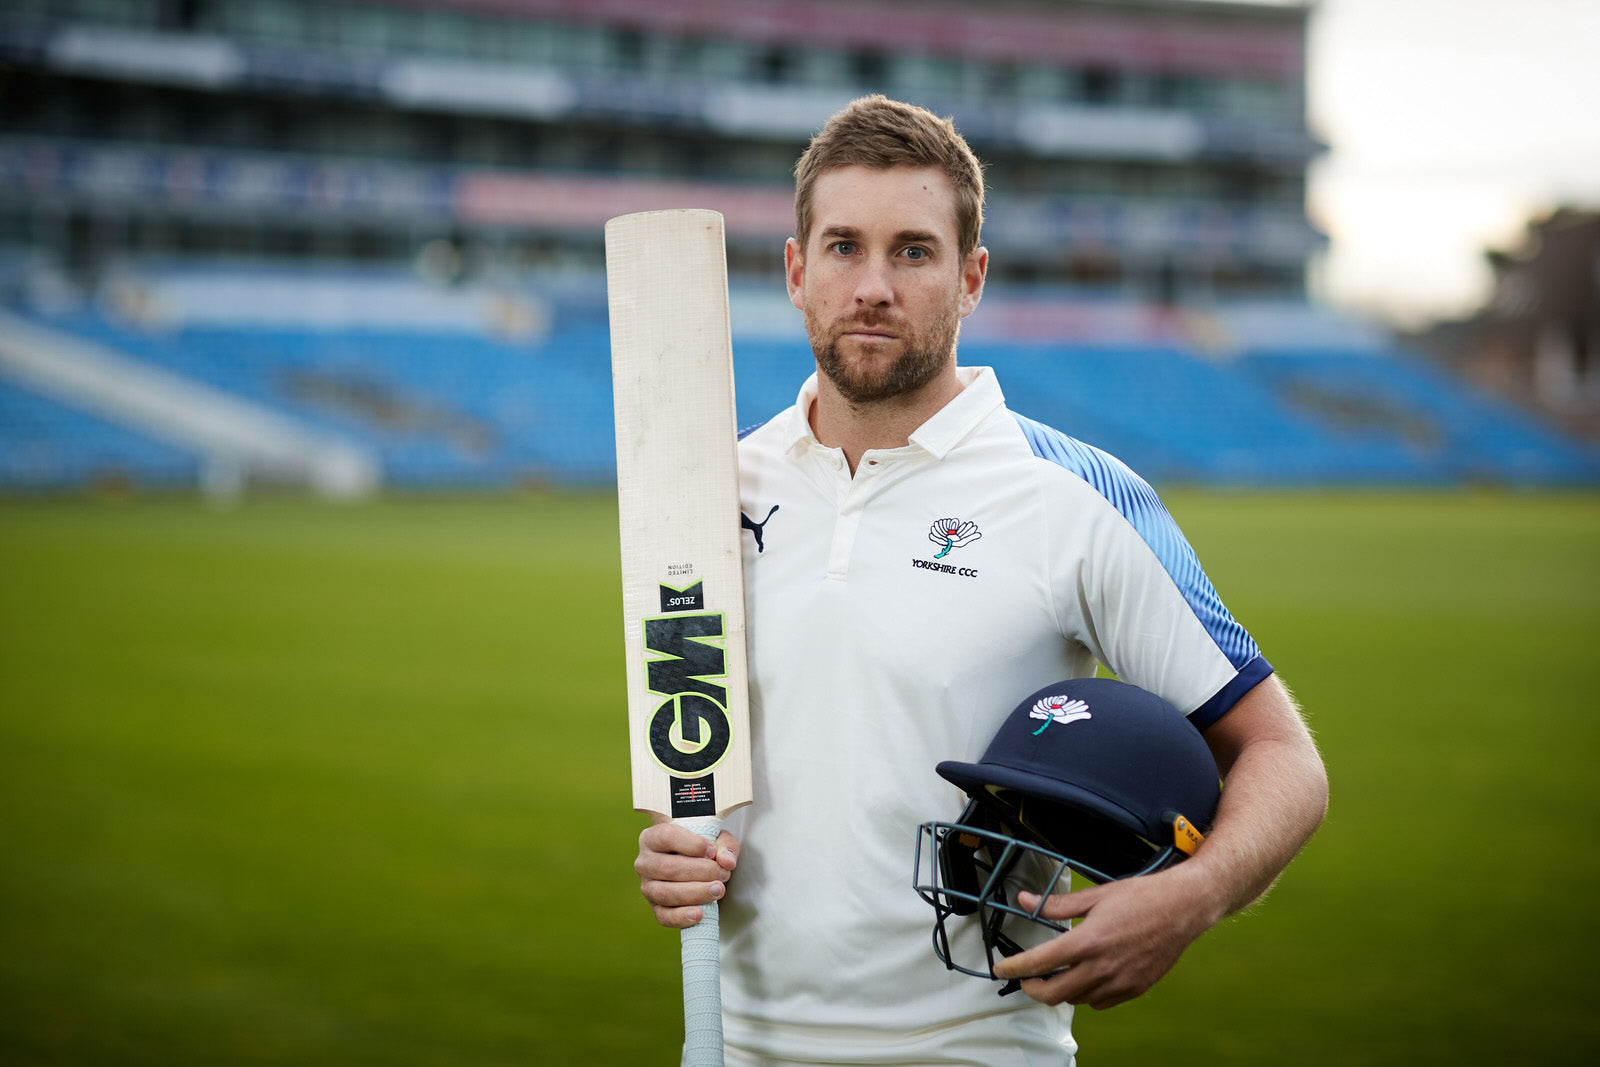 Dawid Malan Selected For South Africa